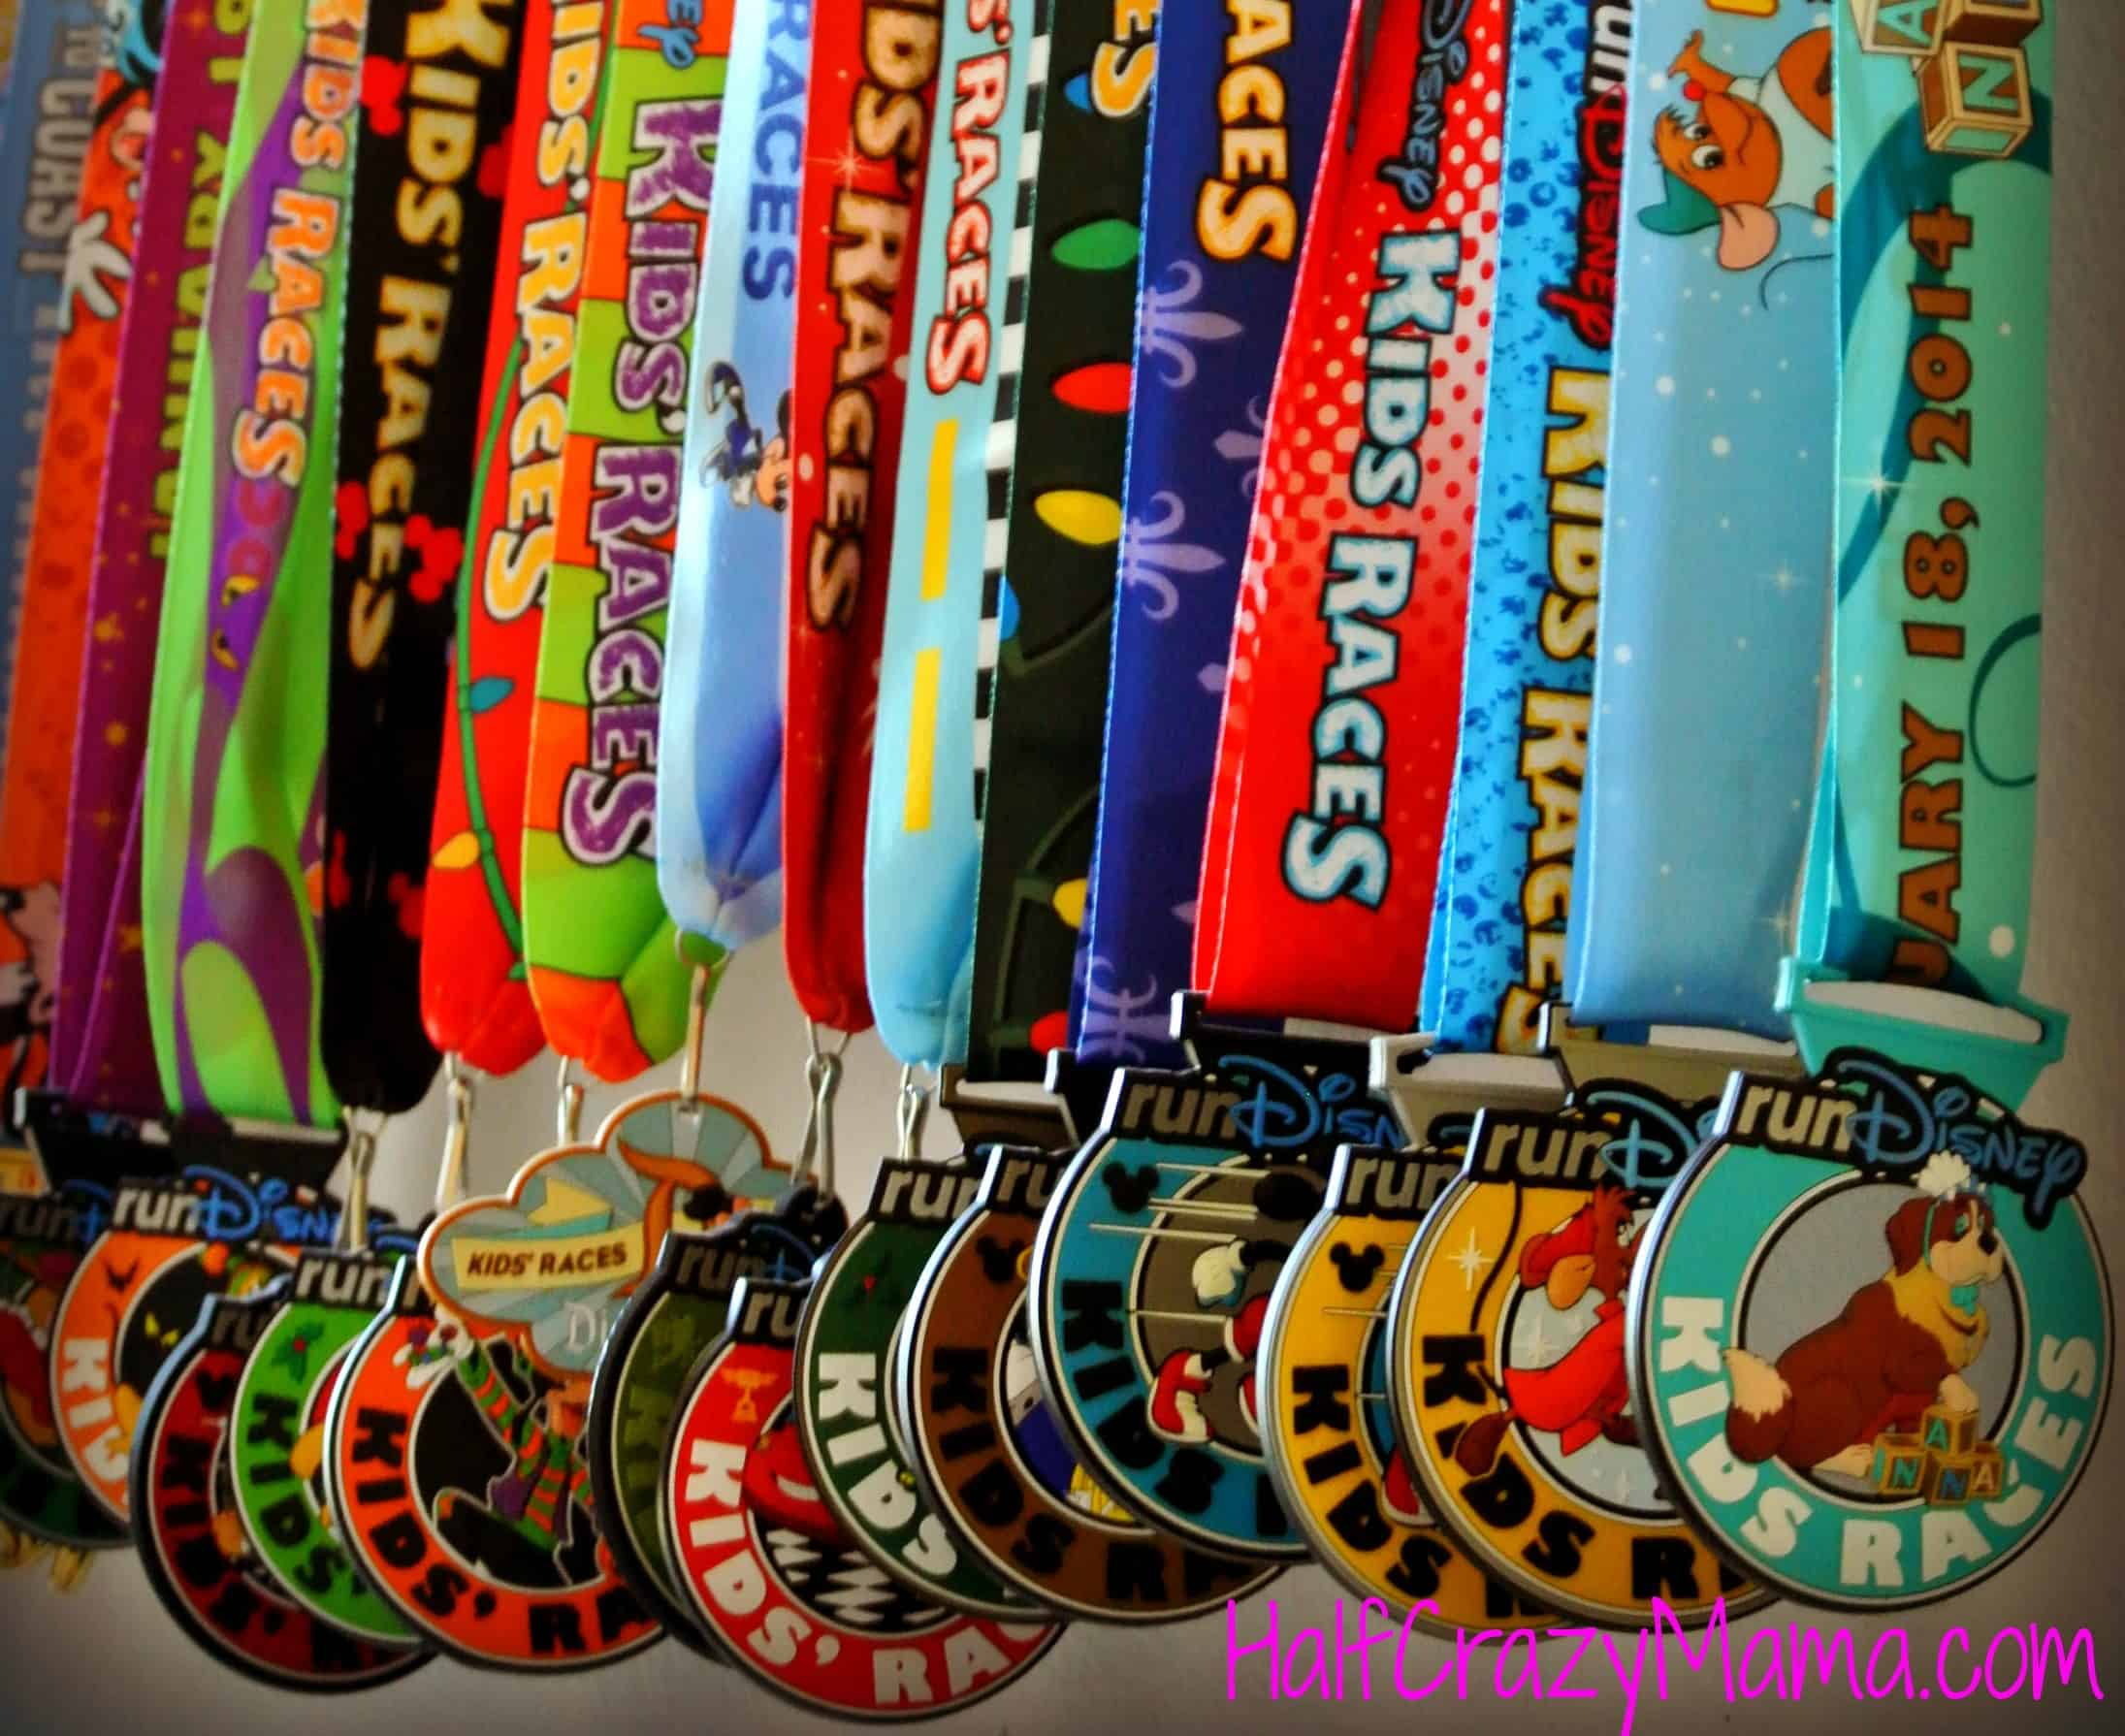 rundisney_kids_race_medals